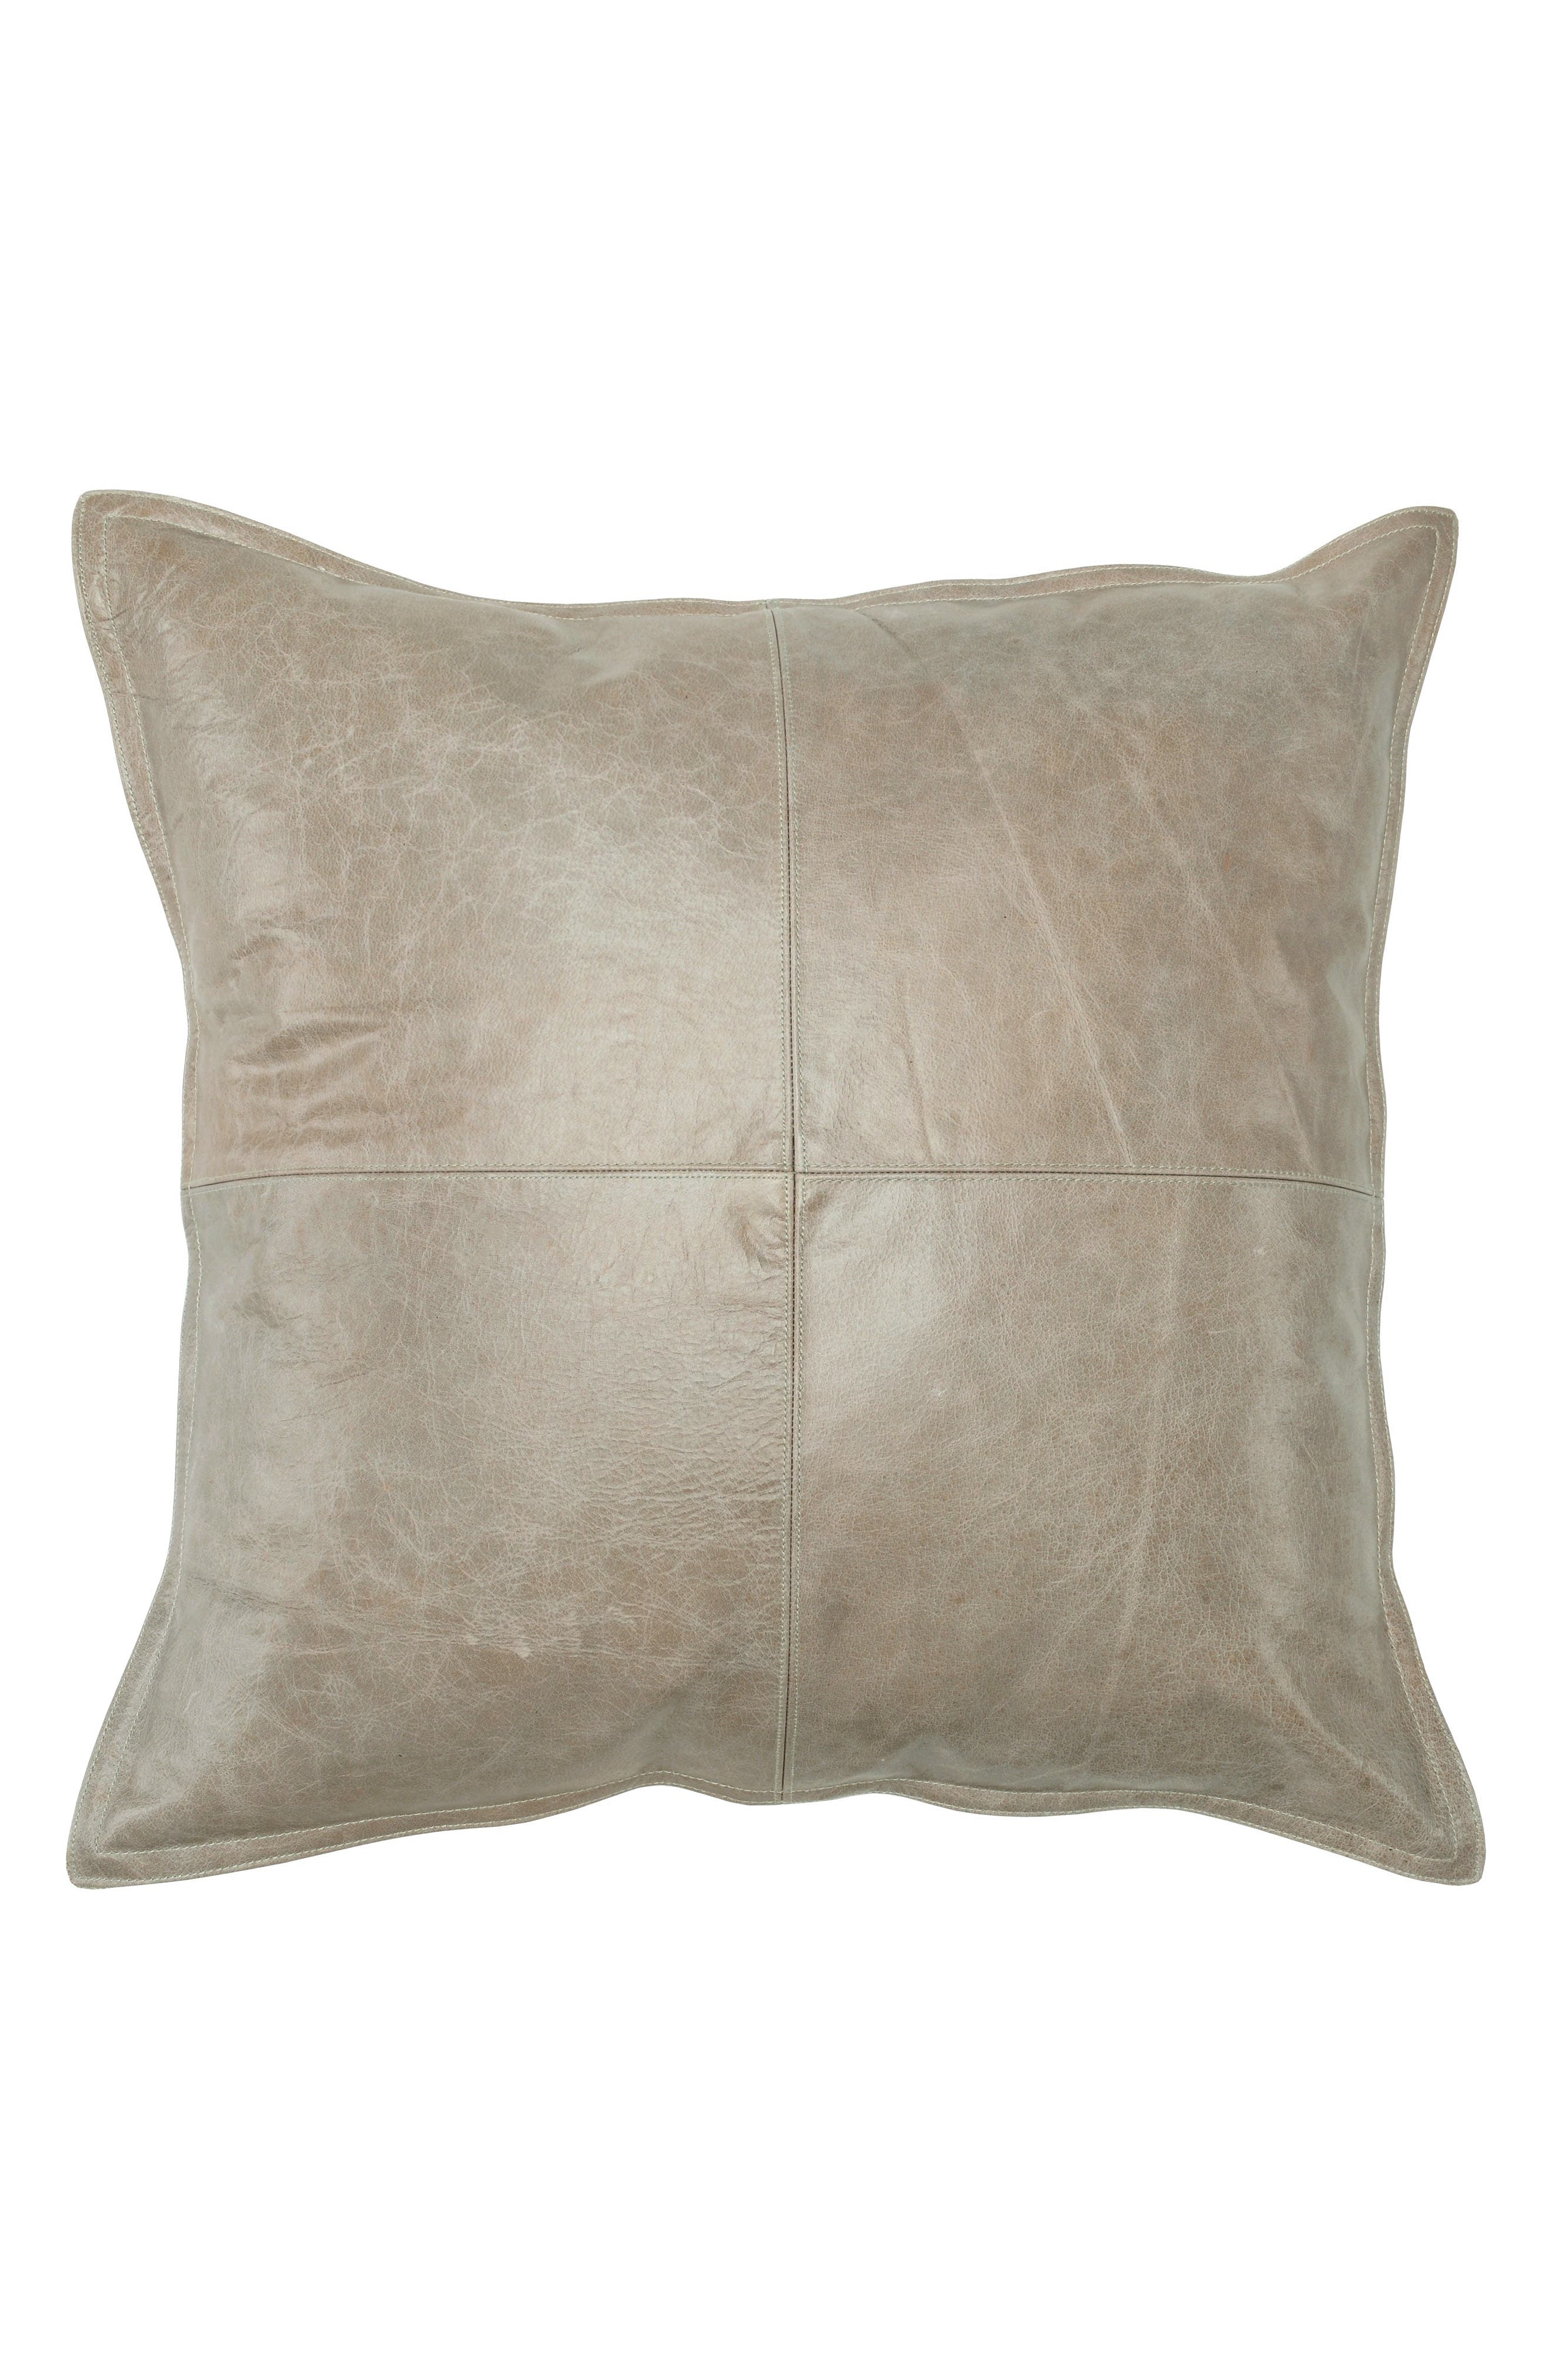 Pike Leather Accent Pillow,                         Main,                         color, GRAY